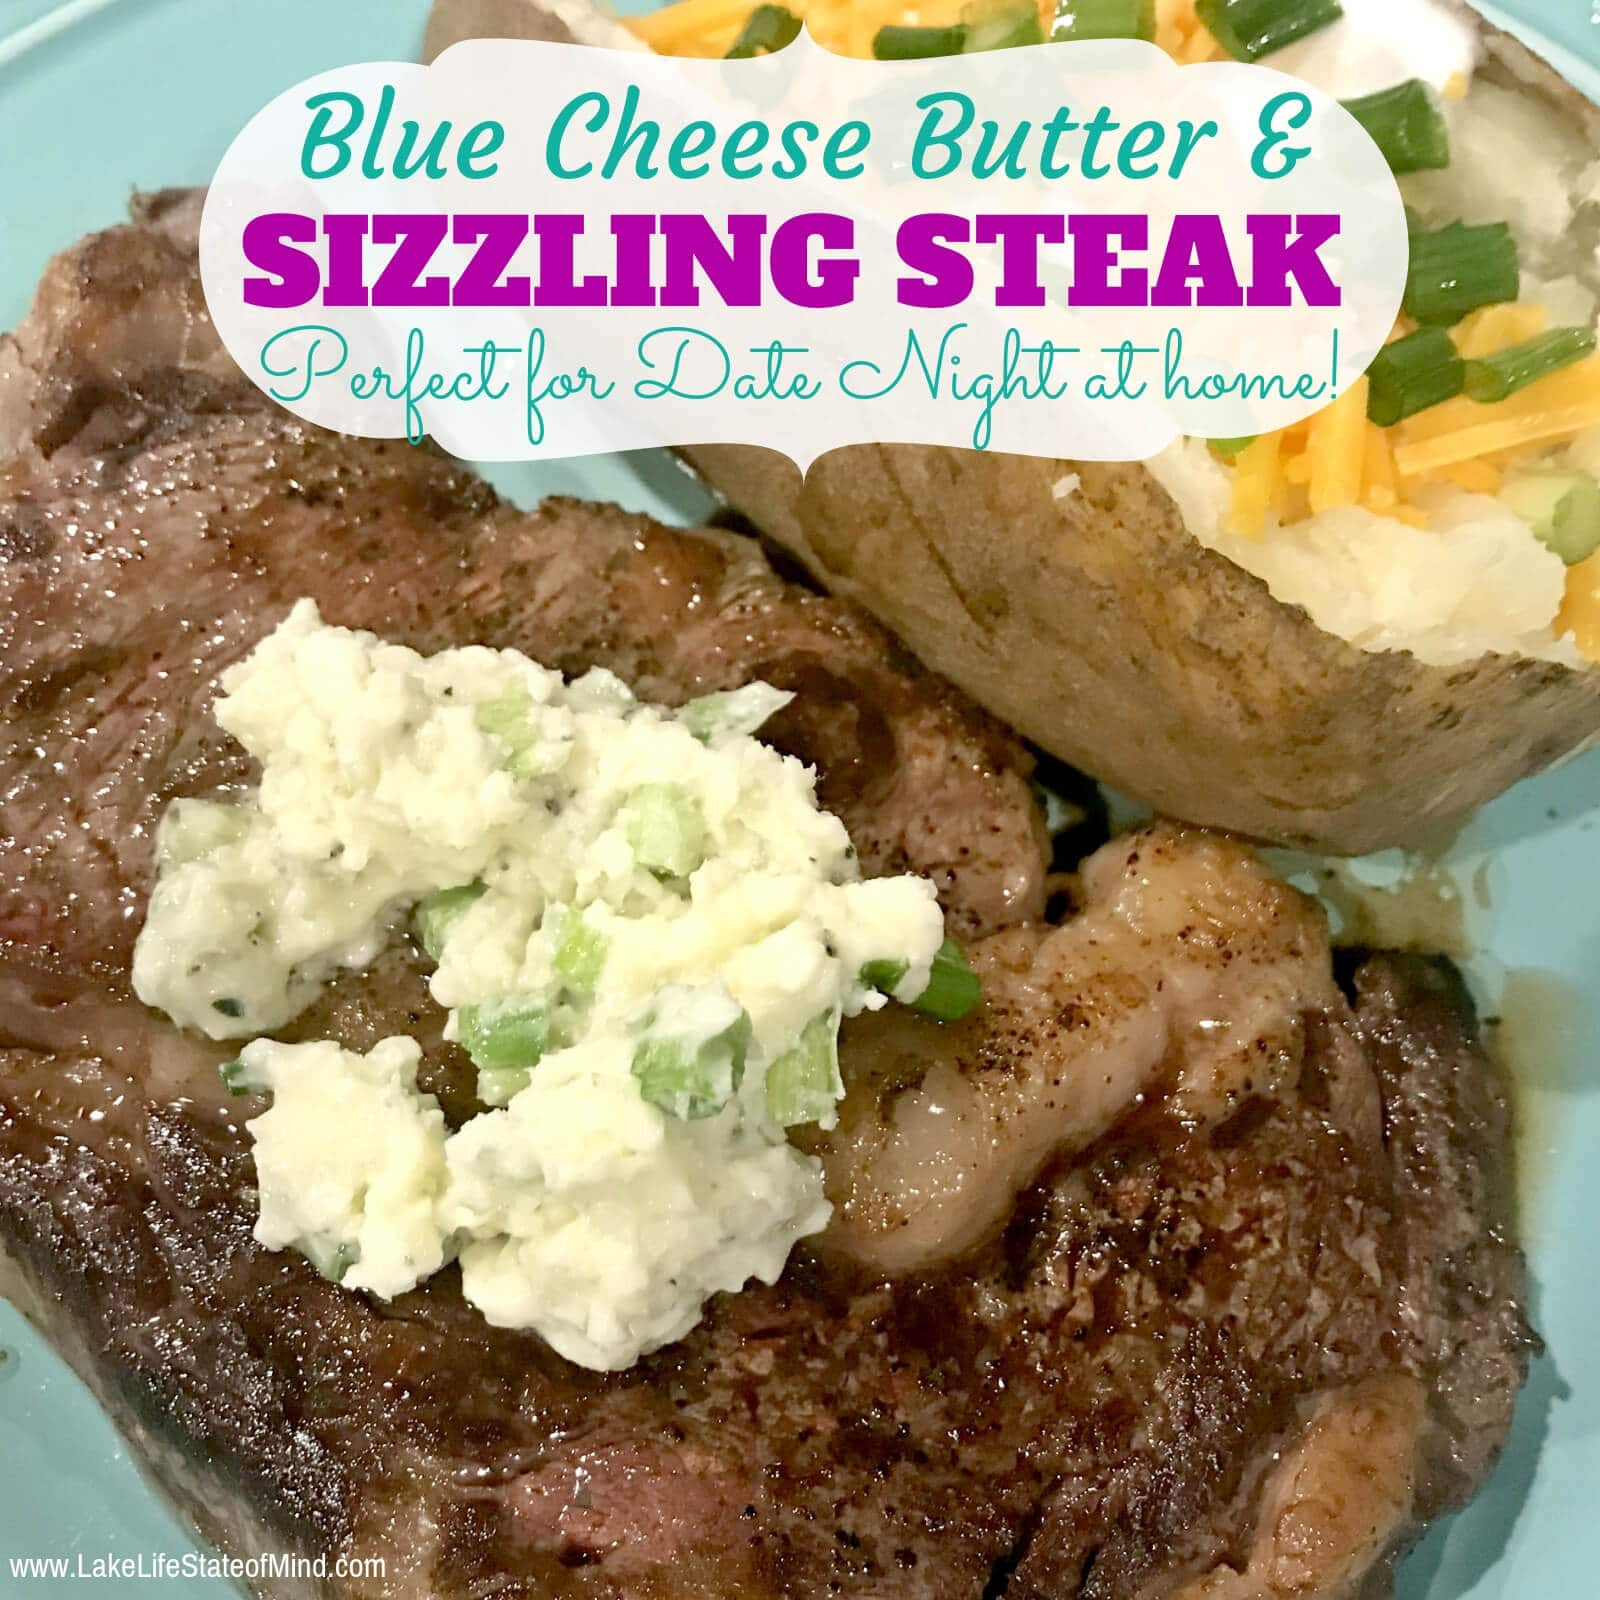 Mouthwatering Steak and Blue Cheese Butter